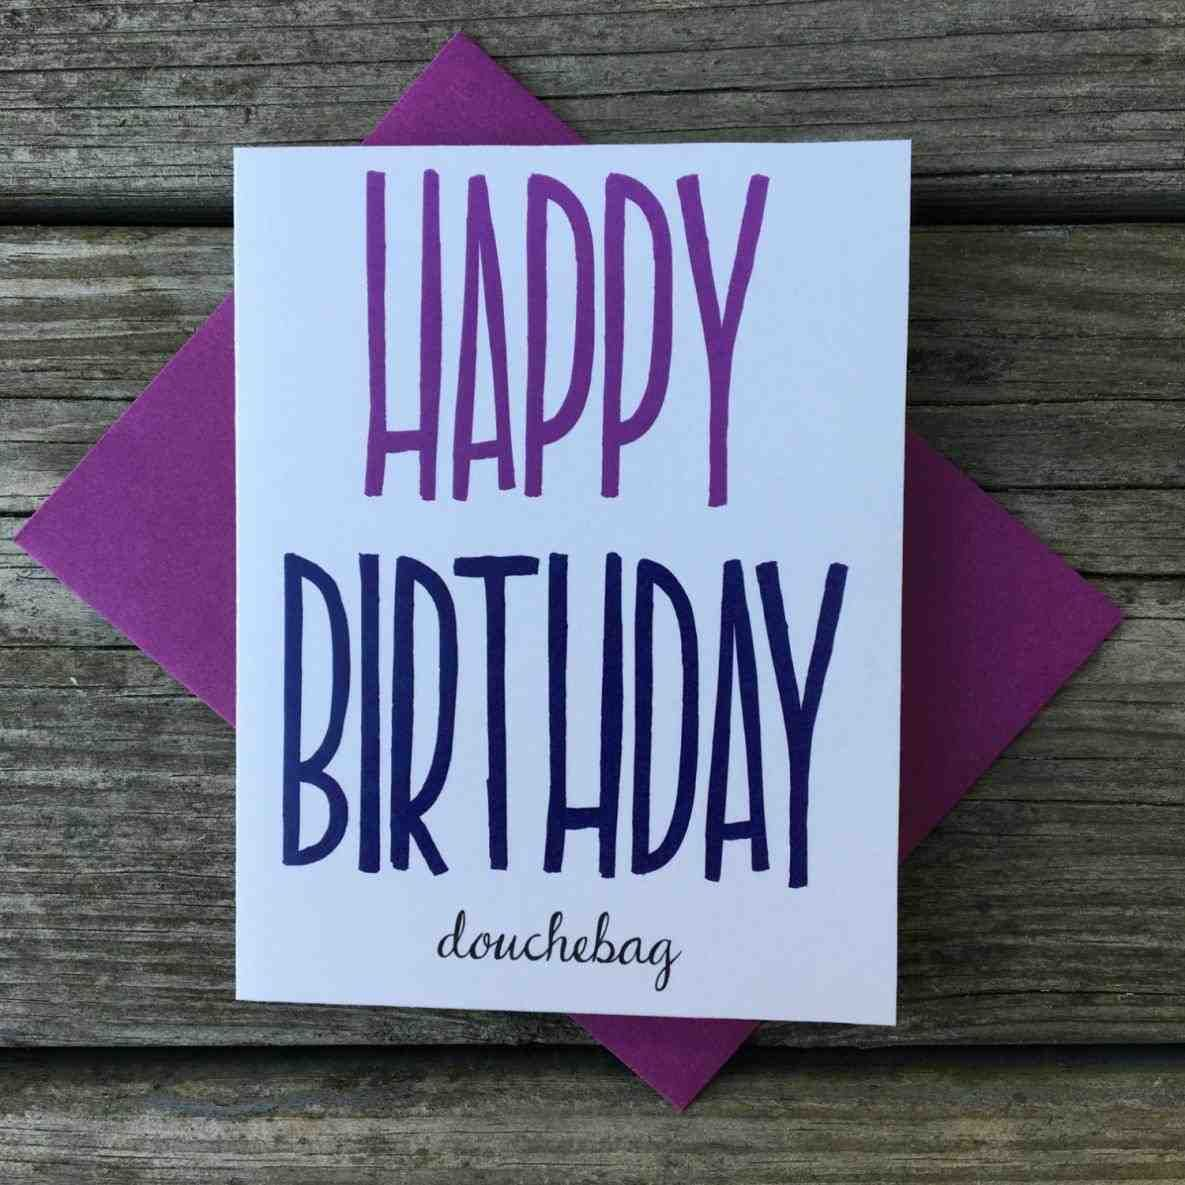 Birthday ideas for inspiring dirty greeting cards free printable and birthday ideas for inspiring dirty greeting cards free printable and dirty birthday cards for him dirty birthday cards 1 birthday ideas for delightful m4hsunfo